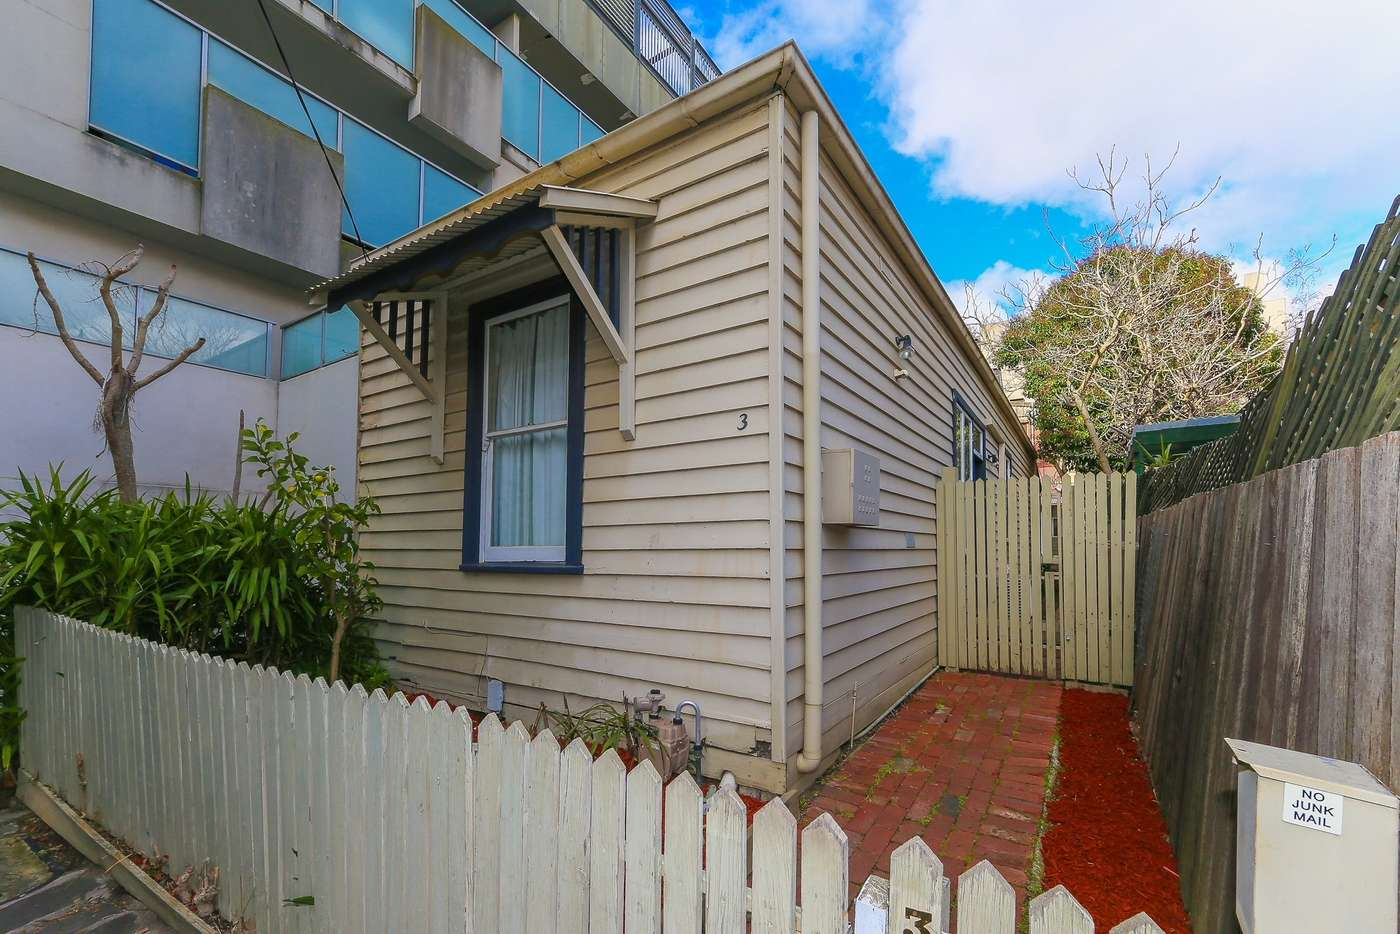 Main view of Homely house listing, 3 Newburgh Place, Hawthorn East VIC 3123